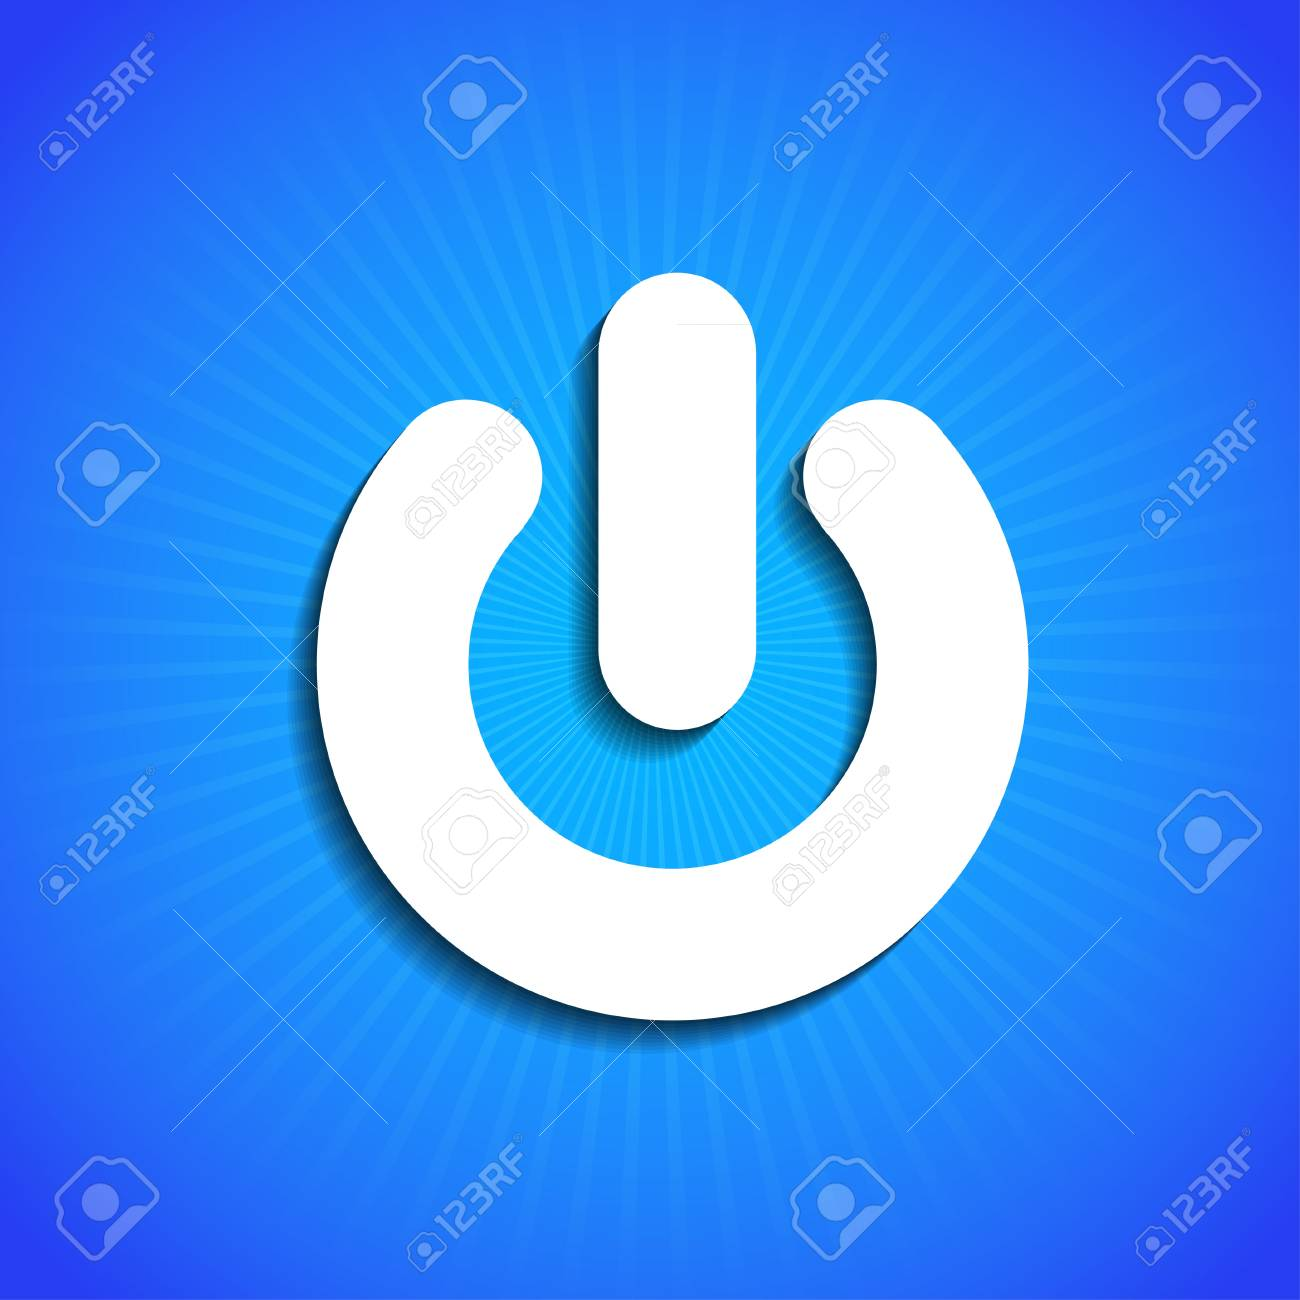 Vector icon on blue background. Eps10 Stock Vector - 17682303